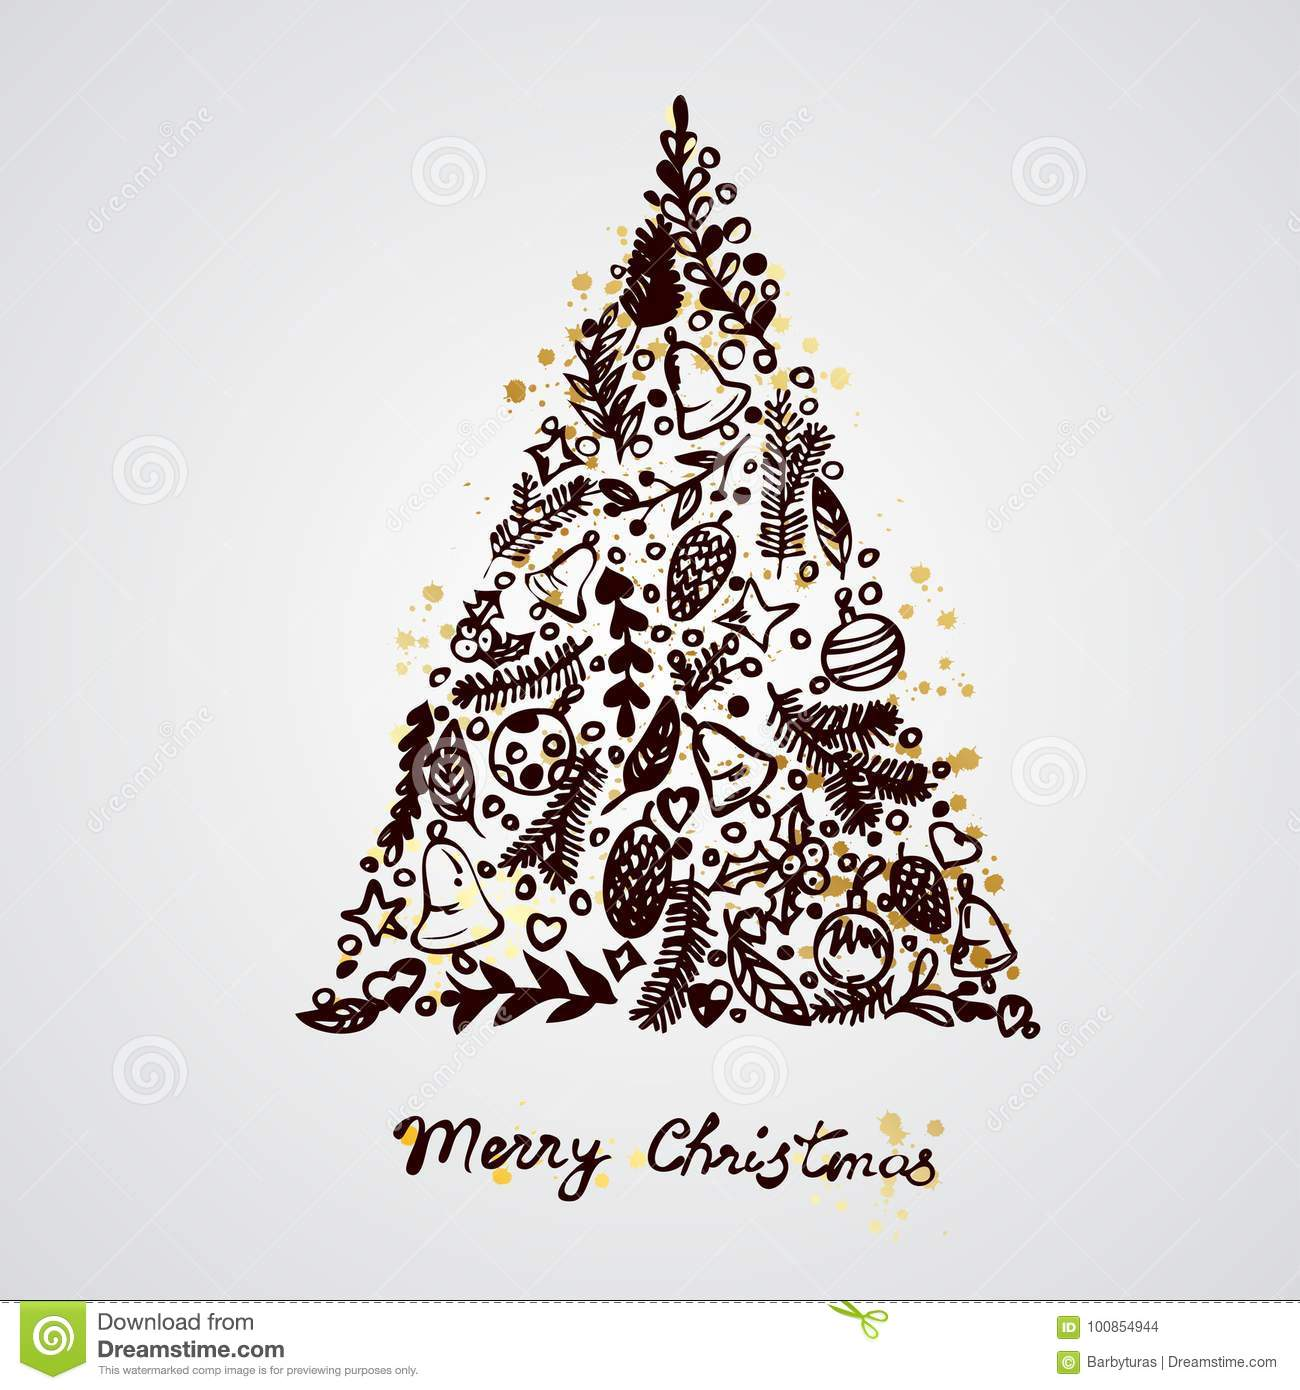 Merry Christmas Tree Decoration Elements Composition Stock